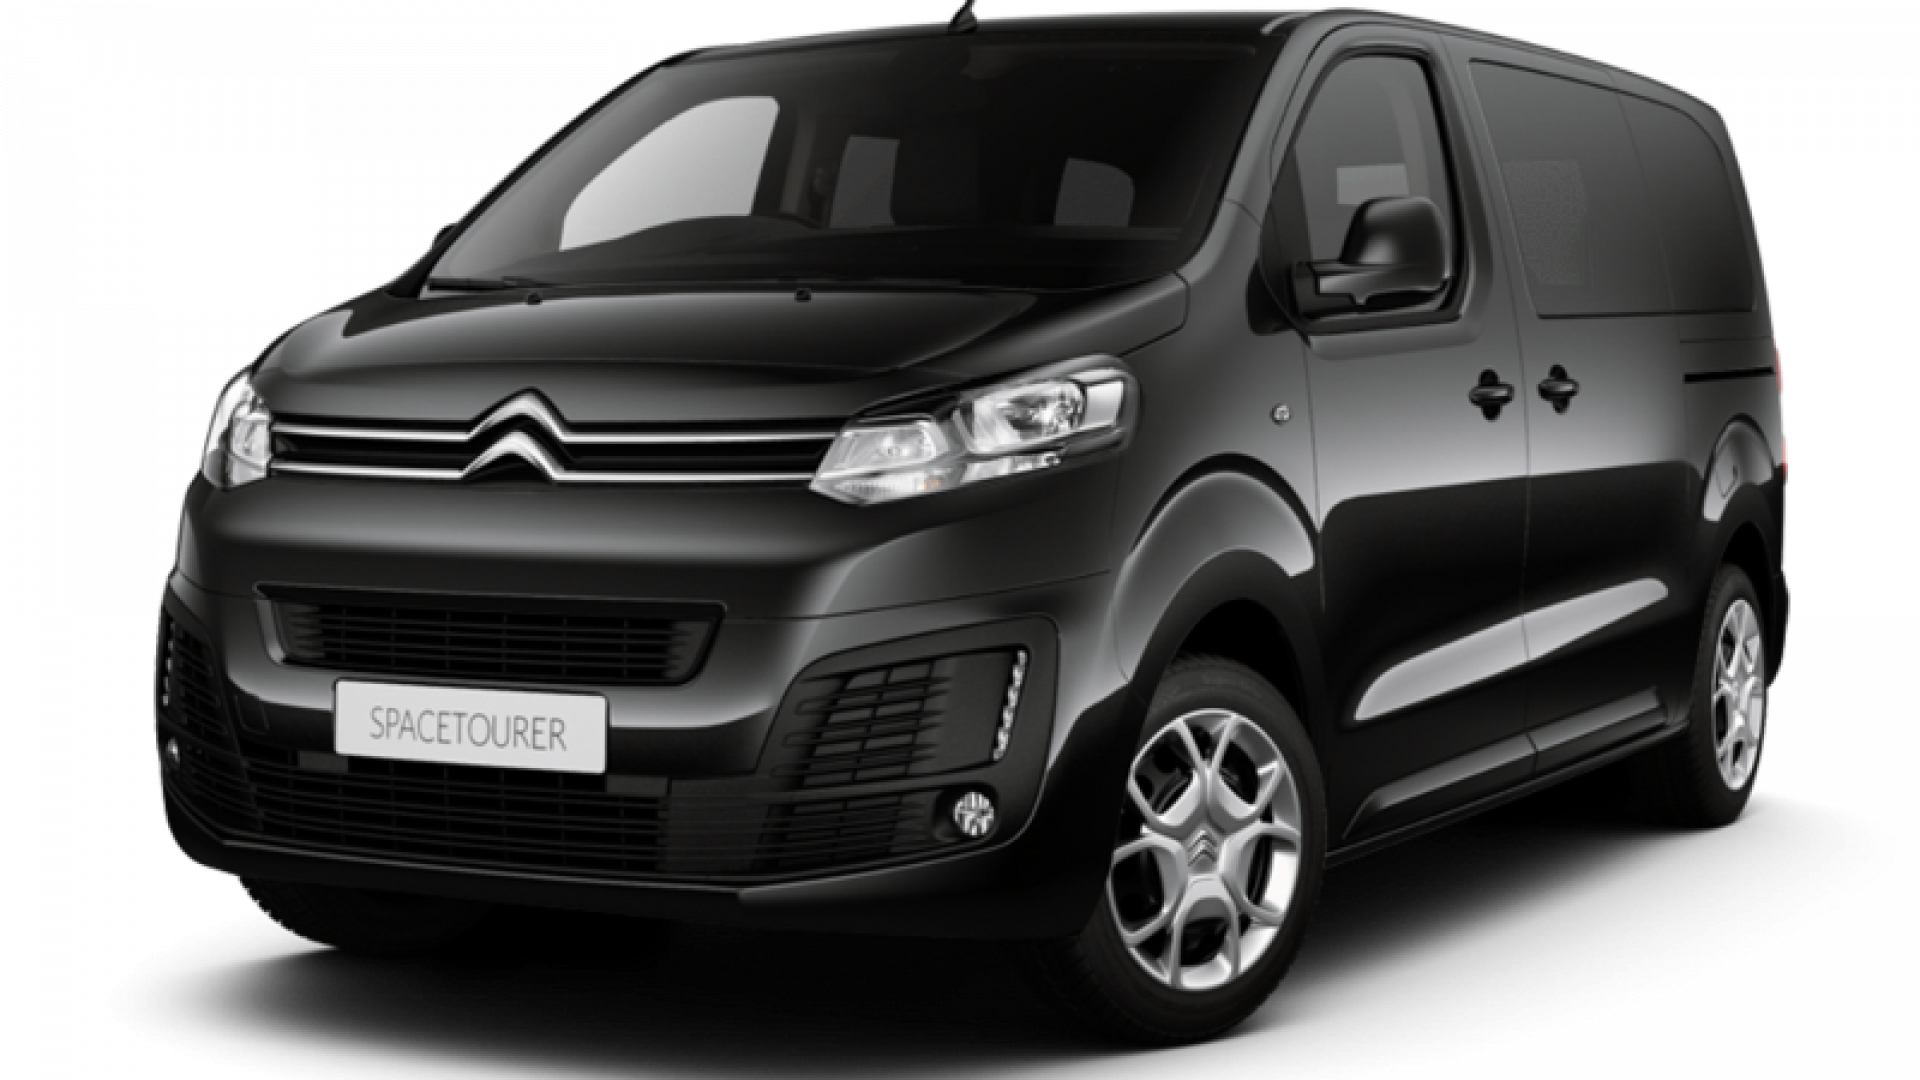 business citroen space tourer estate 1 6 bluehdi 115 feel m 8 seat 5dr robins and day. Black Bedroom Furniture Sets. Home Design Ideas